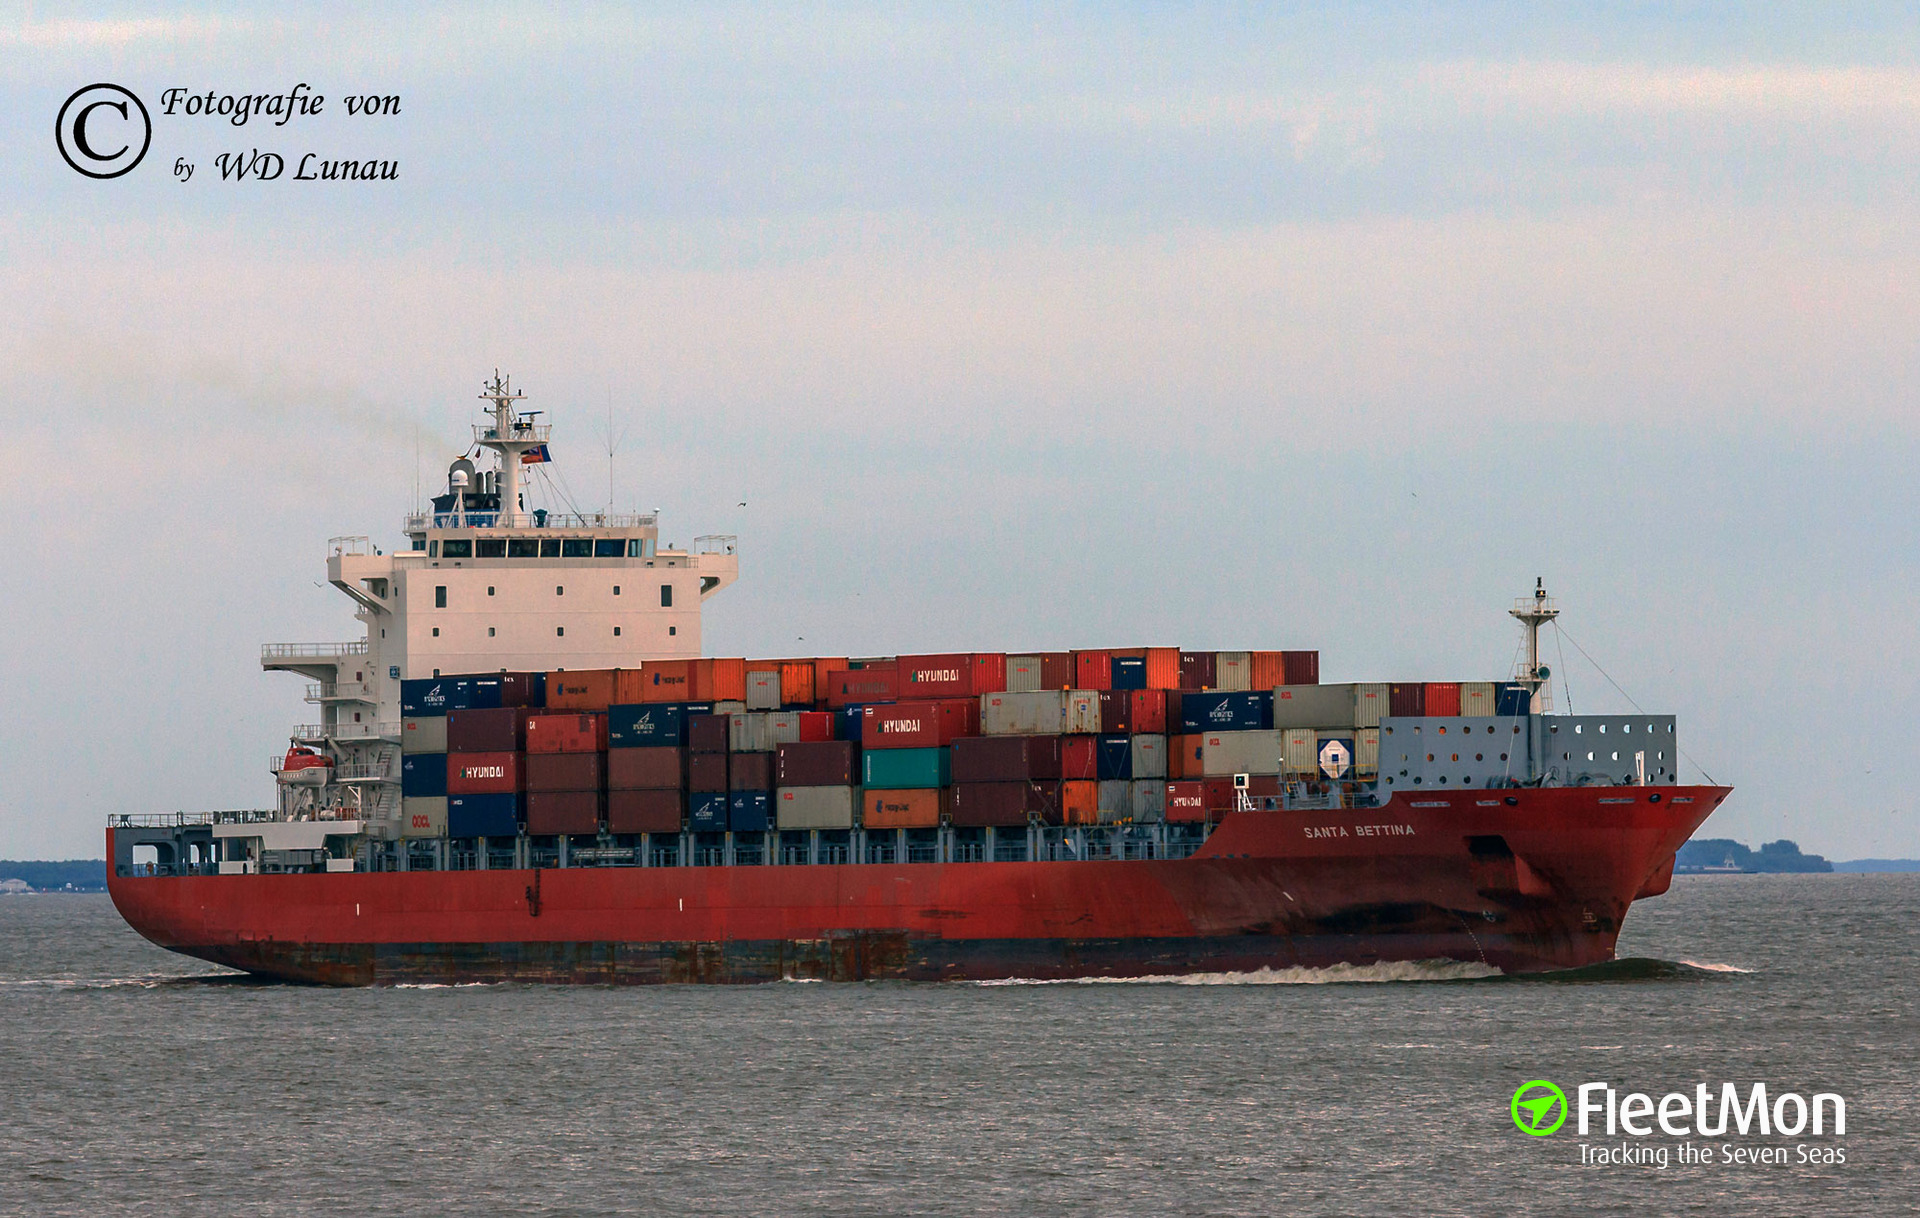 Master of container ship committed suicide during voyage